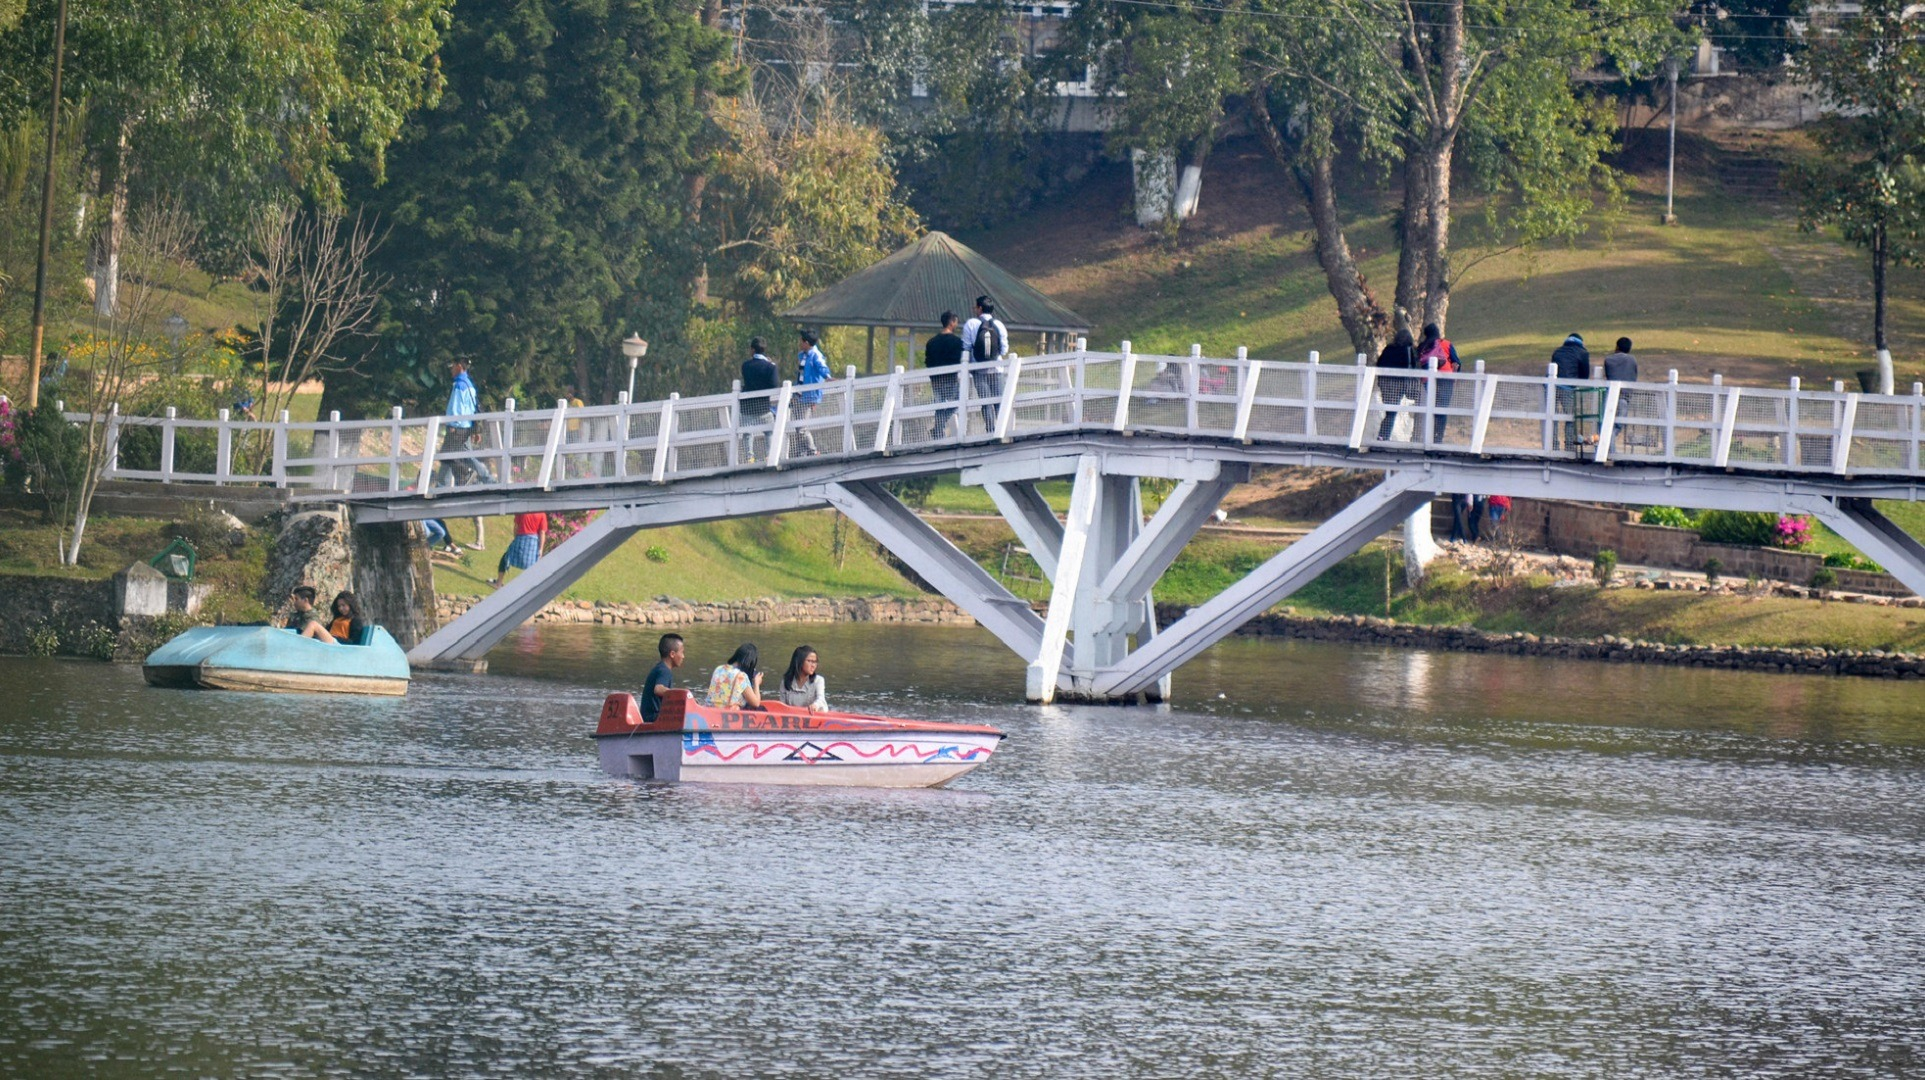 people paddle boating on a pond and some people walking over the bridge